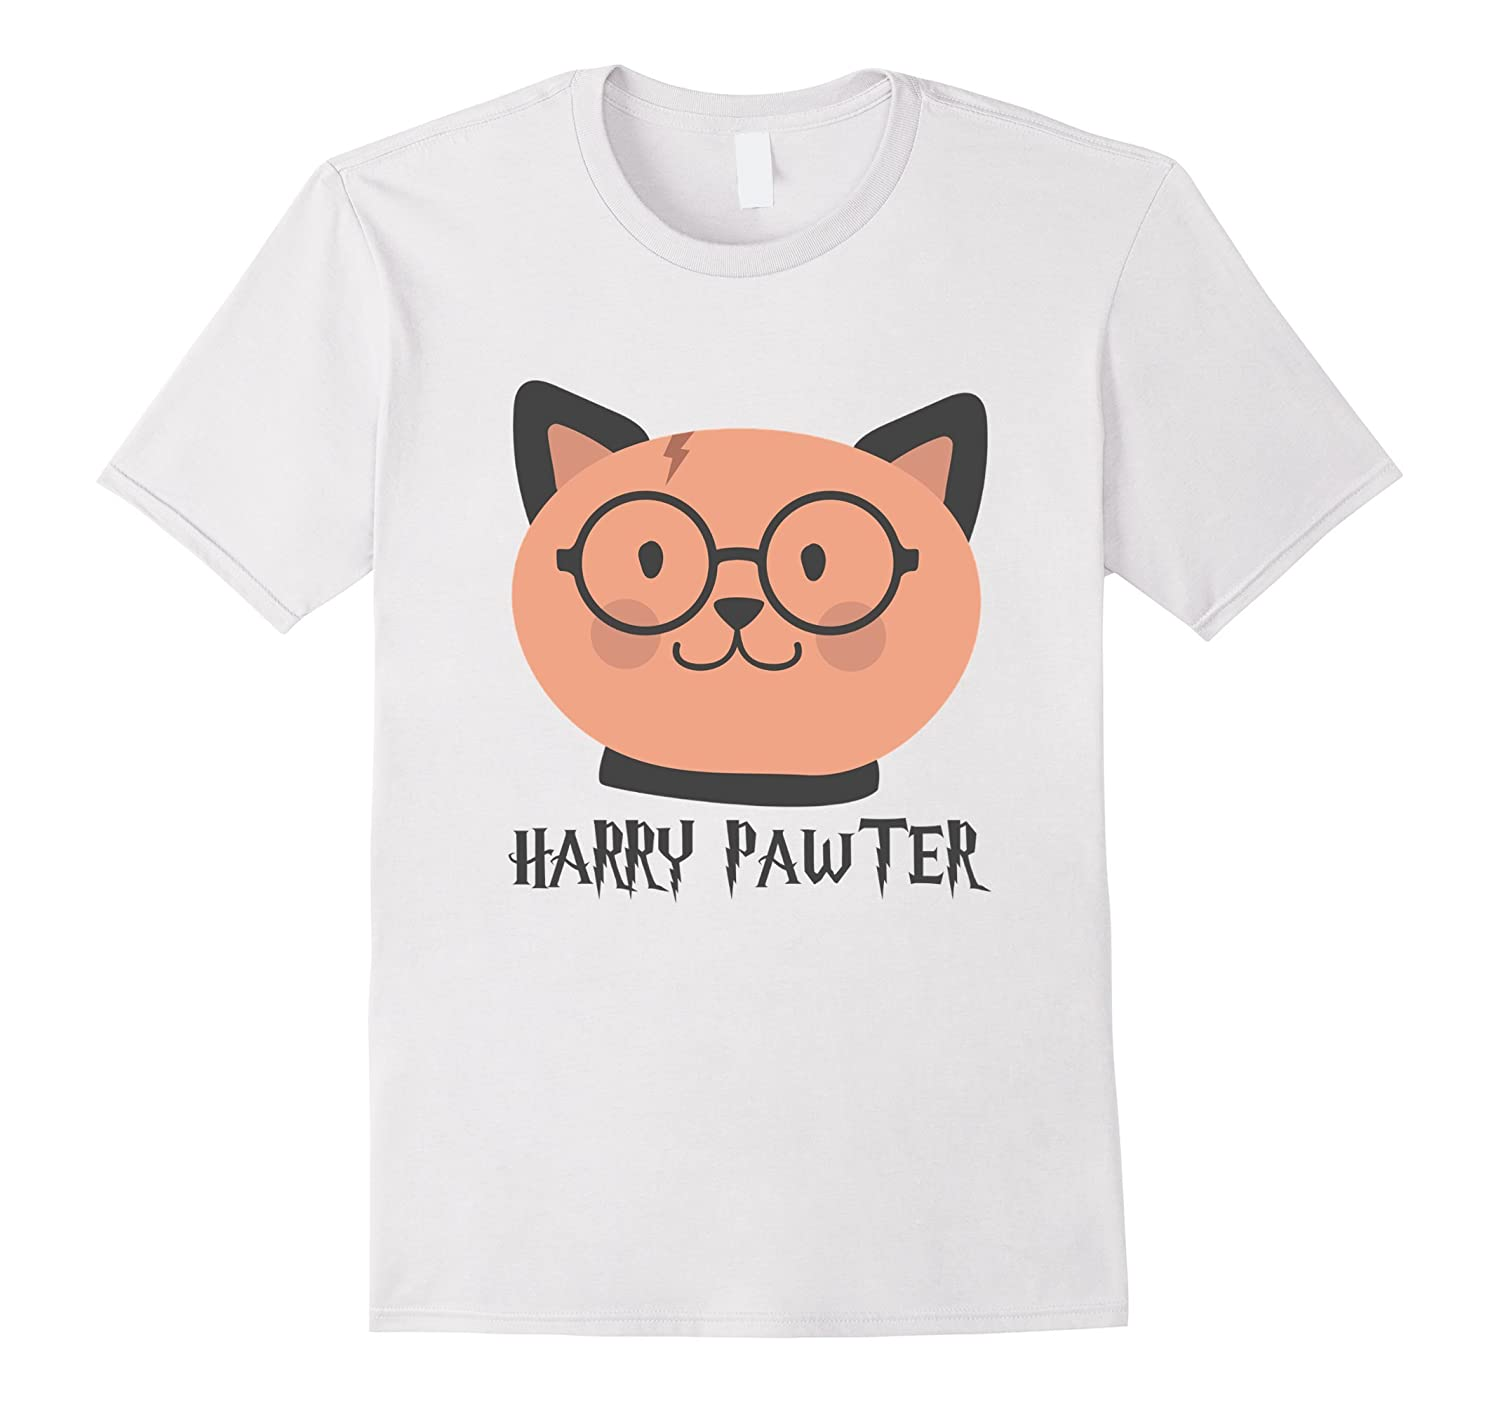 Harry Pawter Funny T-Shirt Cute Magic Cat With Glasses Gift